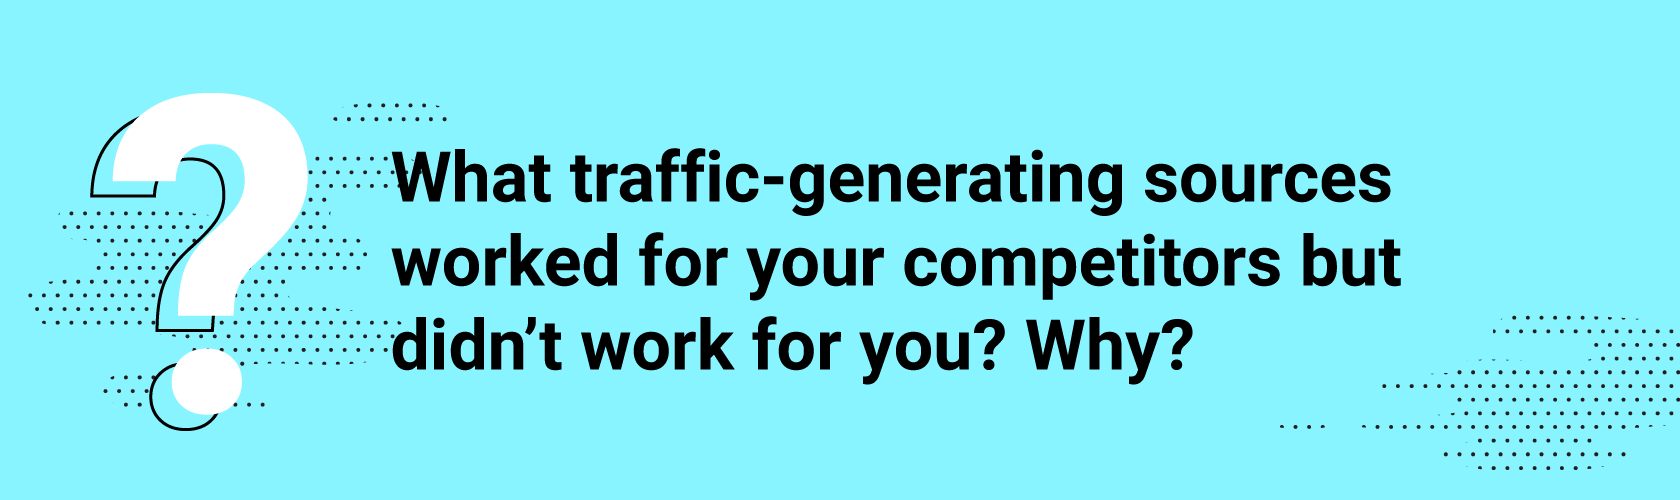 What traffic-generating sources worked for your competitors but didn't work for you? Why?